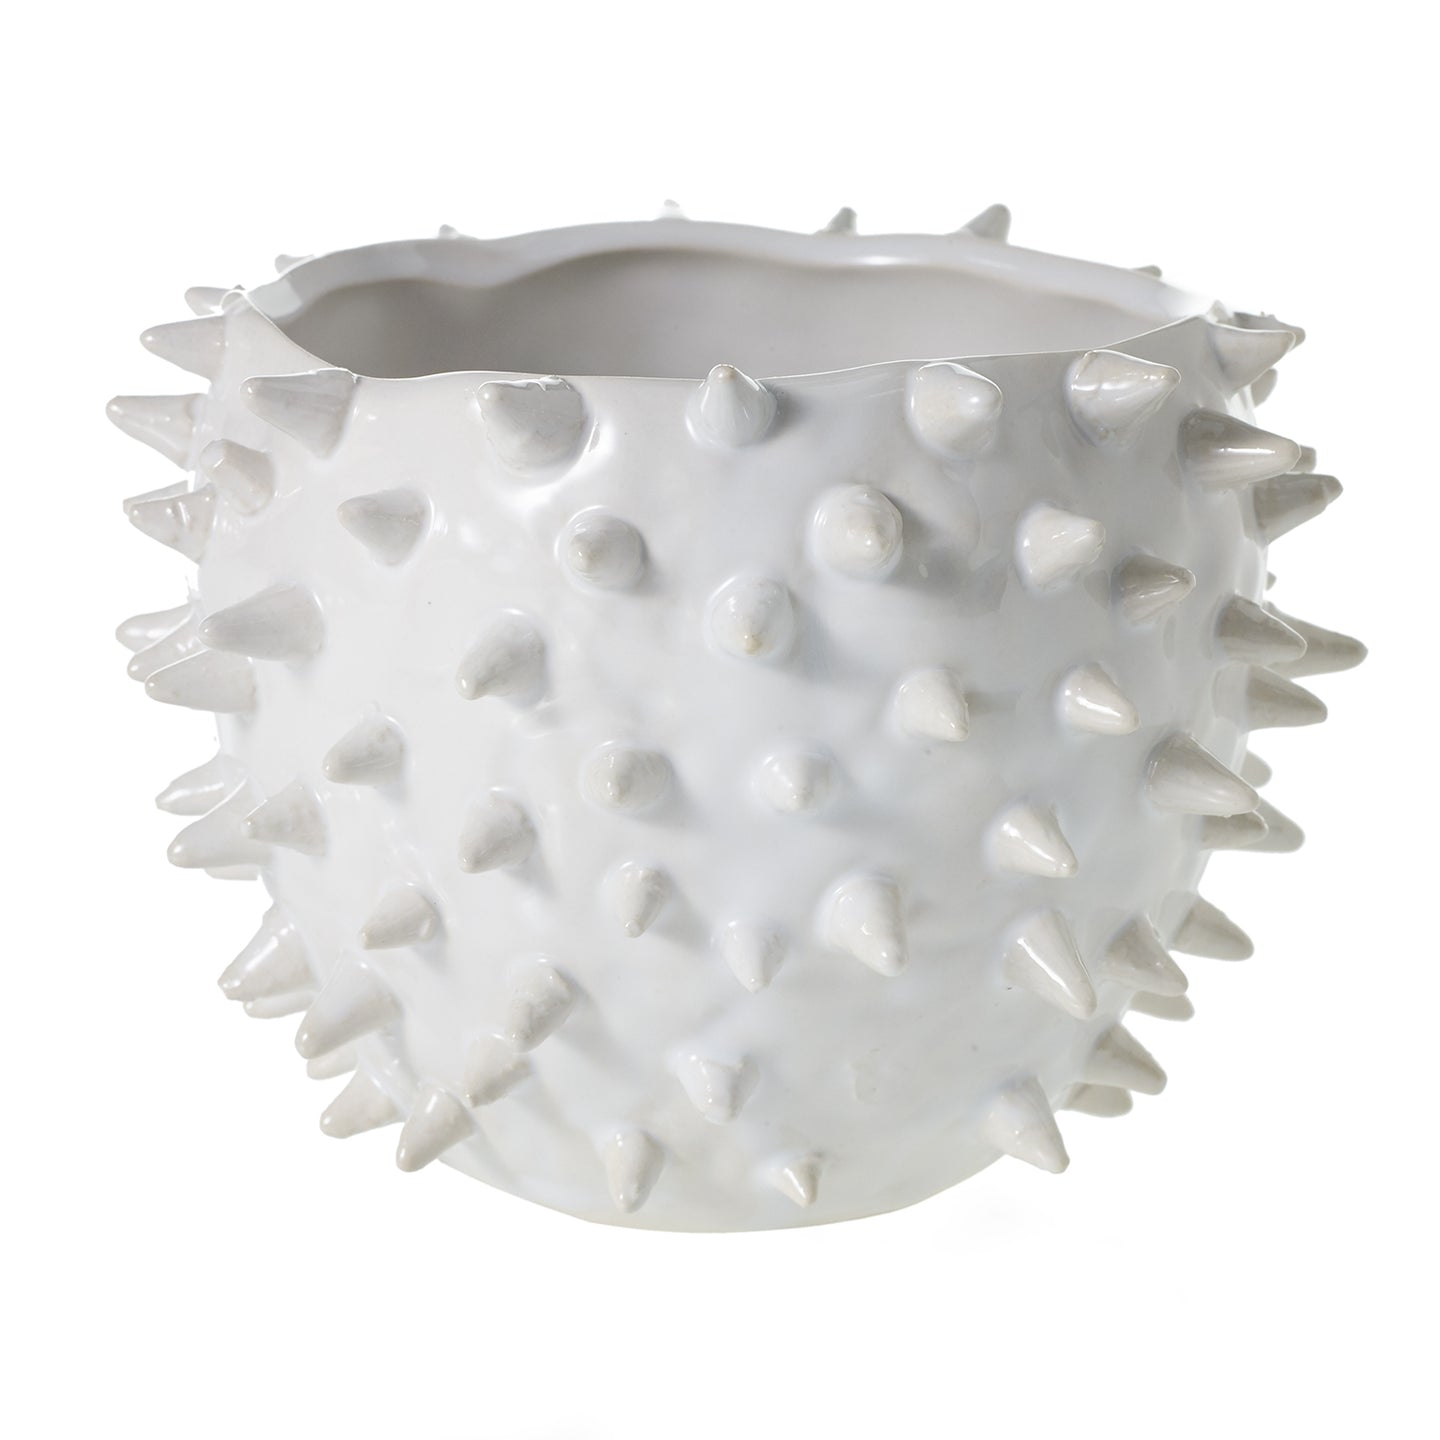 Cacti Ceramic Spiked Pot Medium